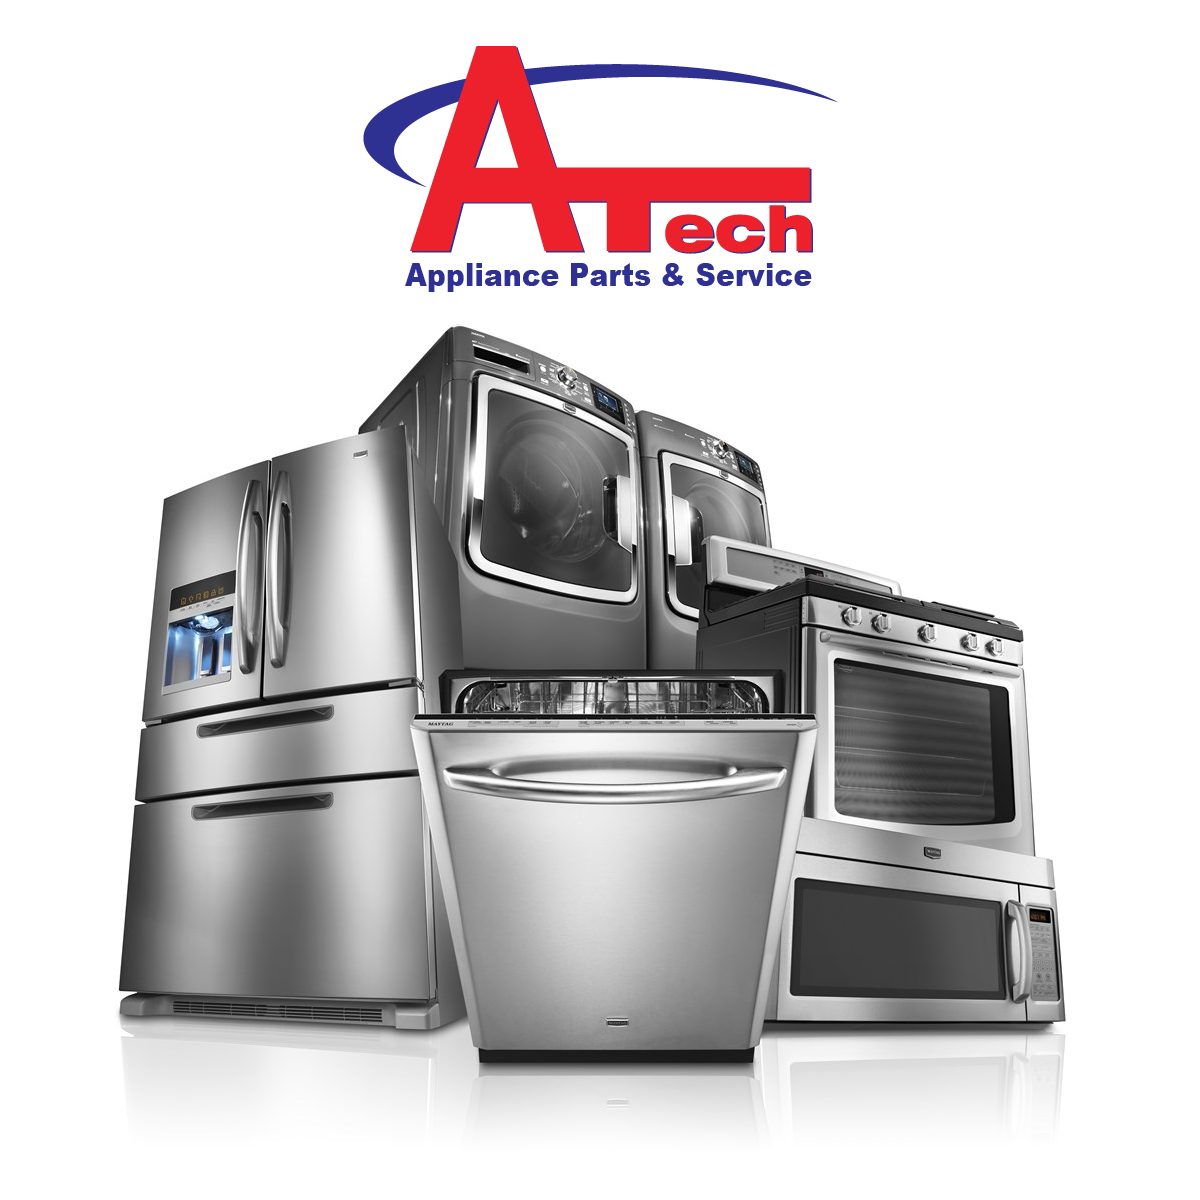 MAYTAG Appliance Parts and Repair Services in Northwest Arkansas